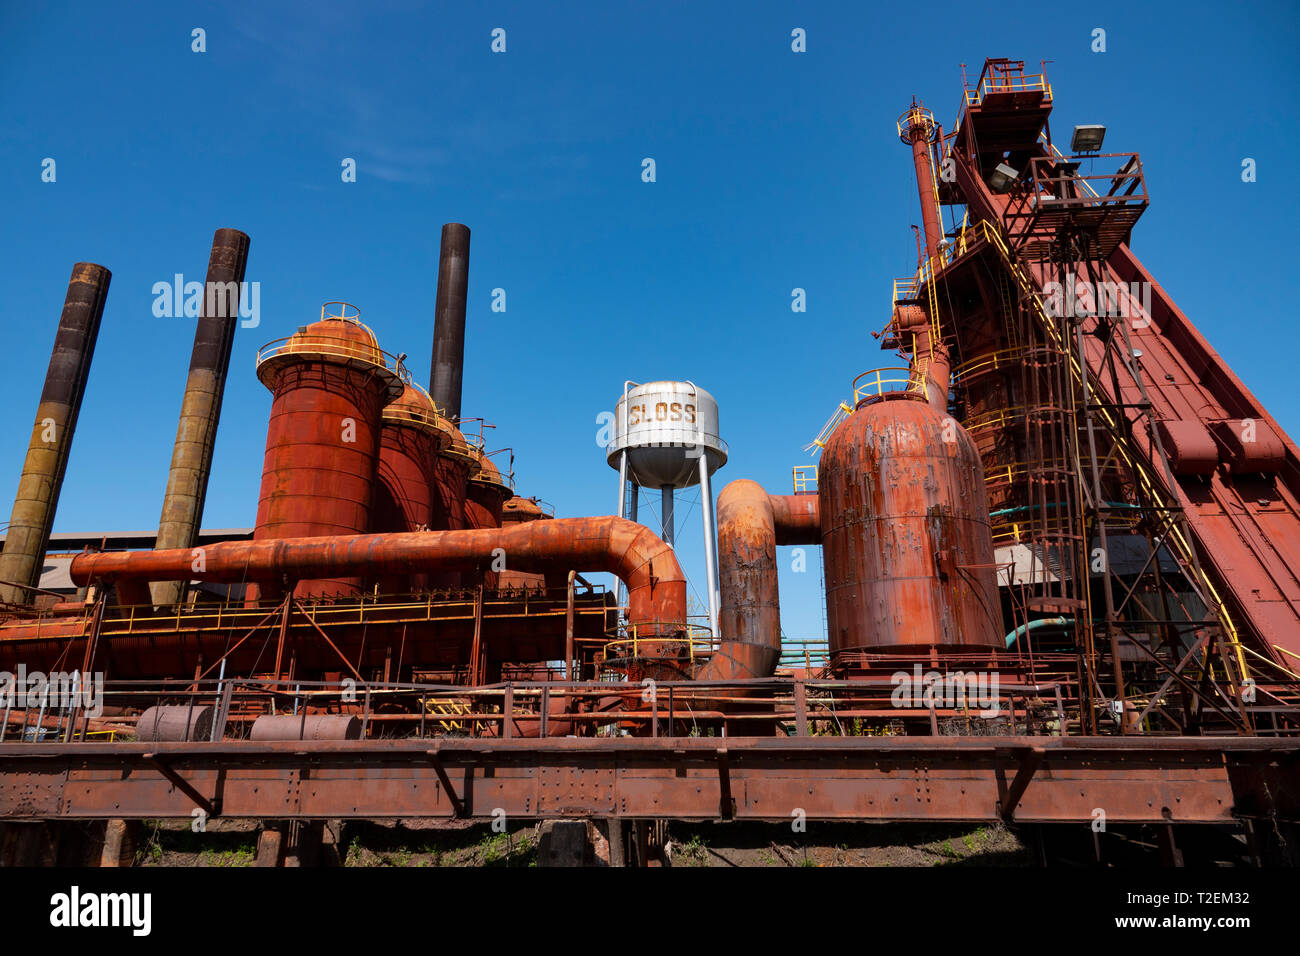 usa-alabama-birmingham-the-sloss-furnaces-now-a-national-historic-landmark-once-a-pig-iron-plant-T2EM32.jpg